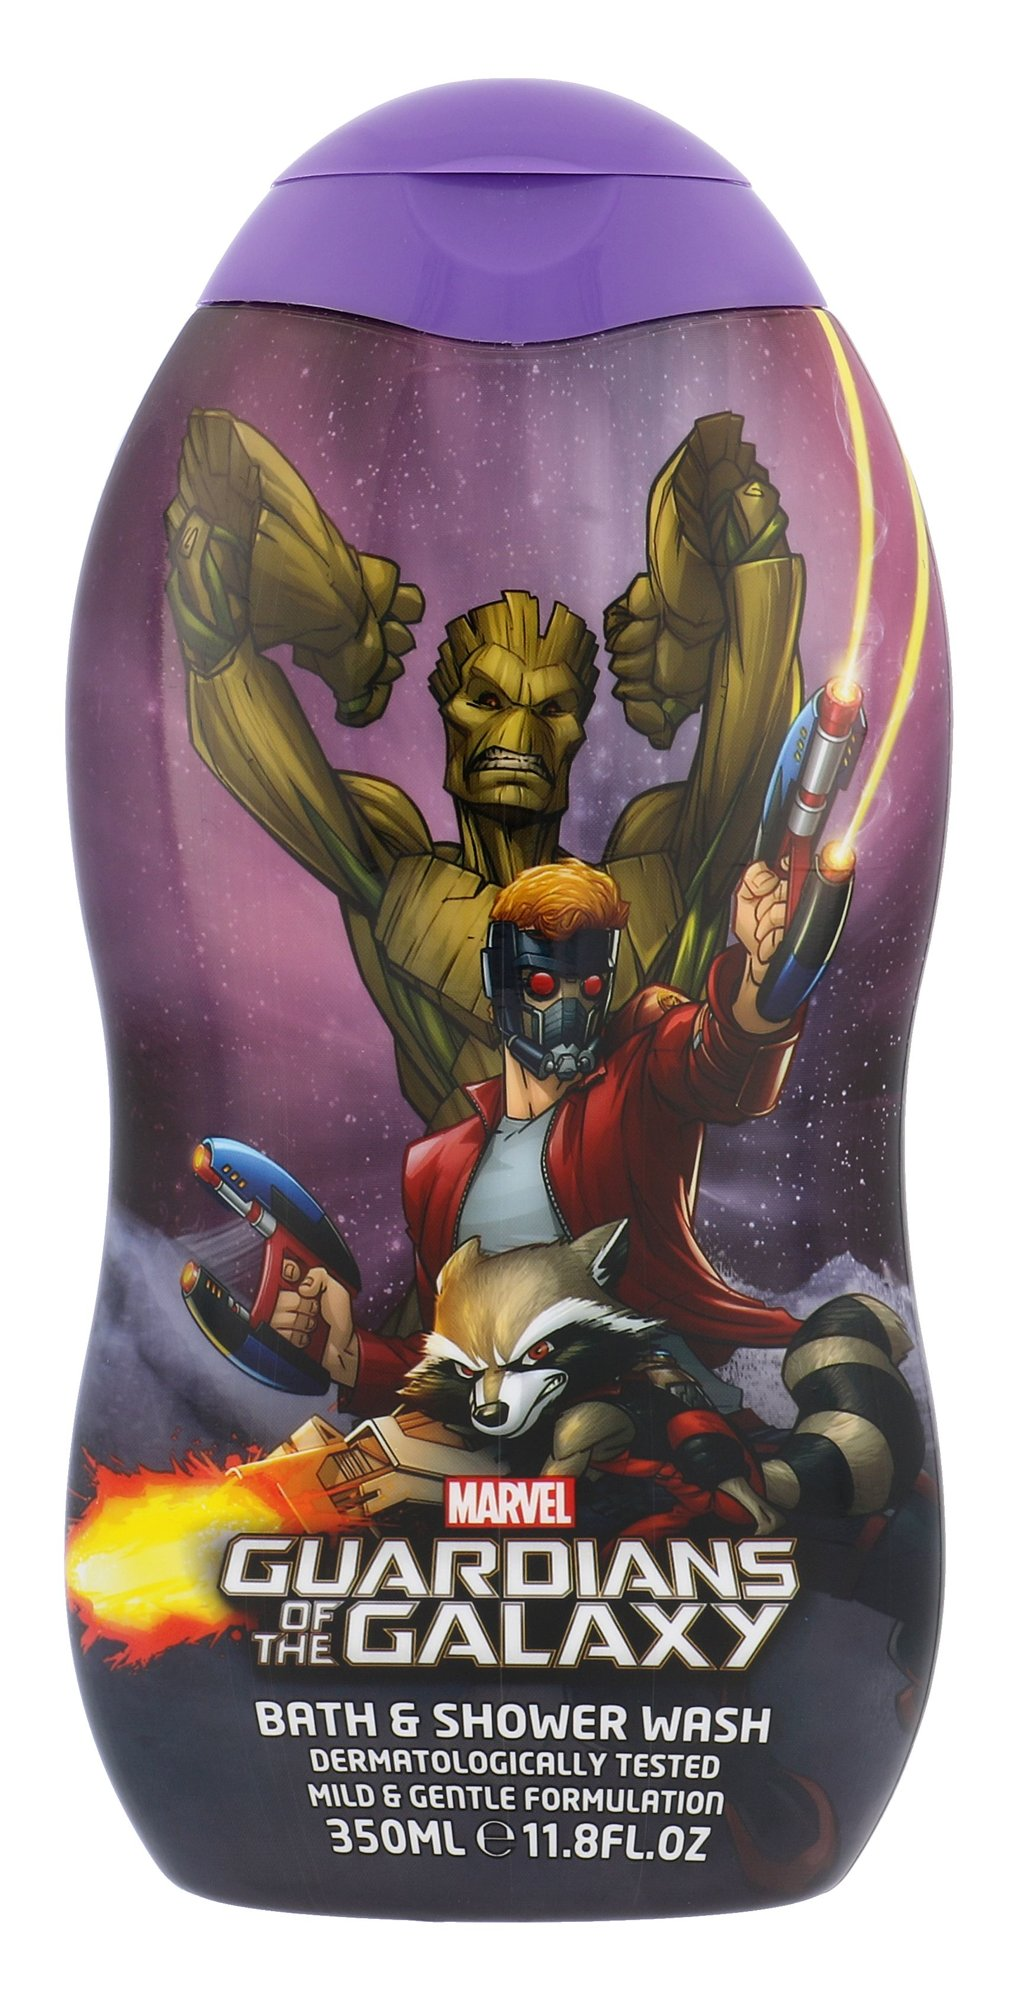 Marvel Guardians of the Galaxy Shower gel 350ml